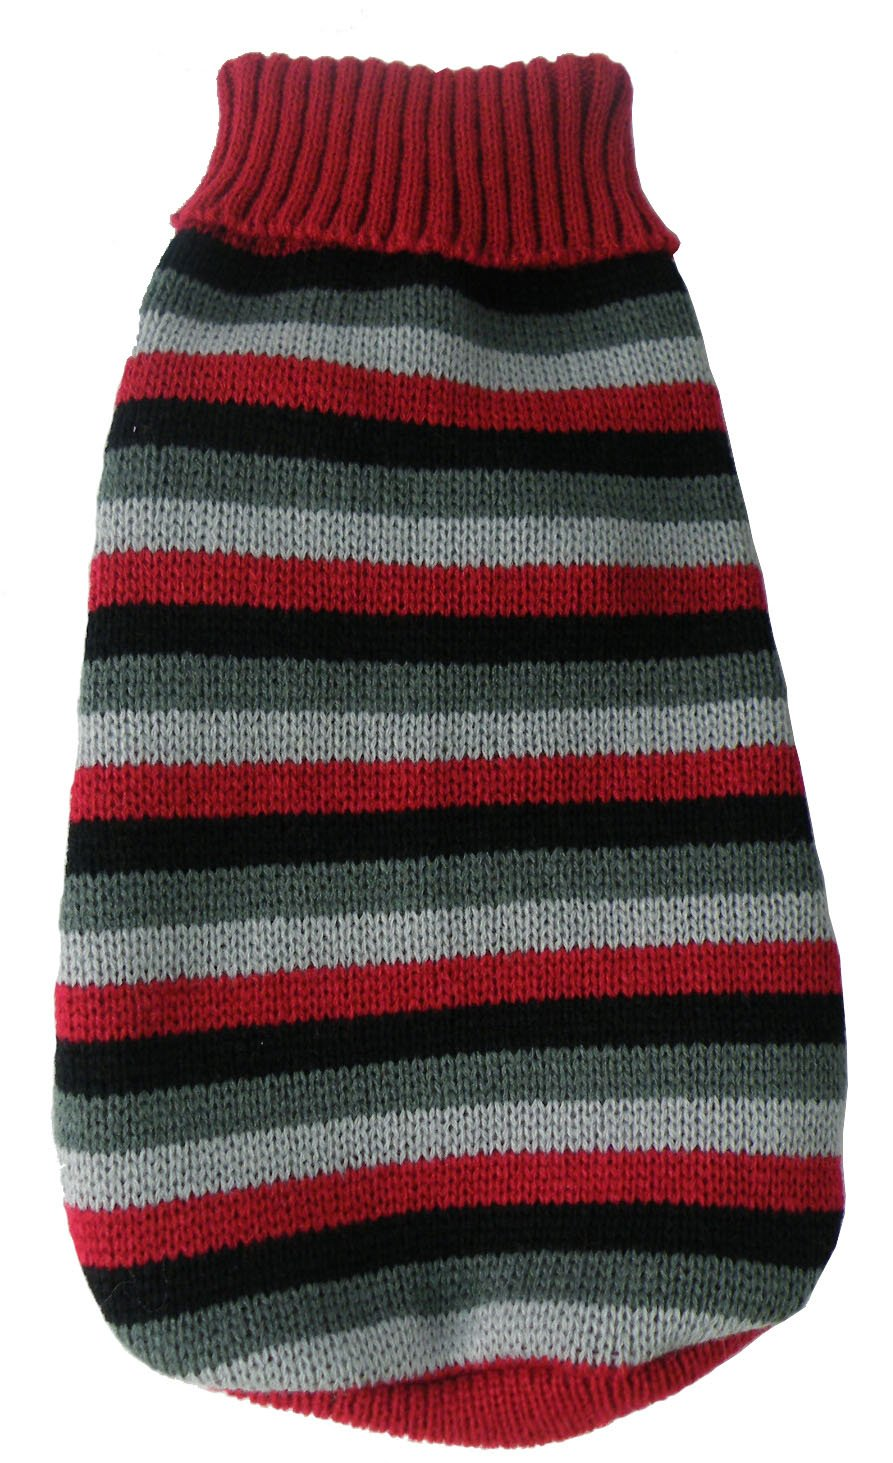 Pet Life Polo-Casual Lounge' Cable Knit Fashion Designer Turtle Neck Pet Dog Sweater, Small, Red, Black and Grey